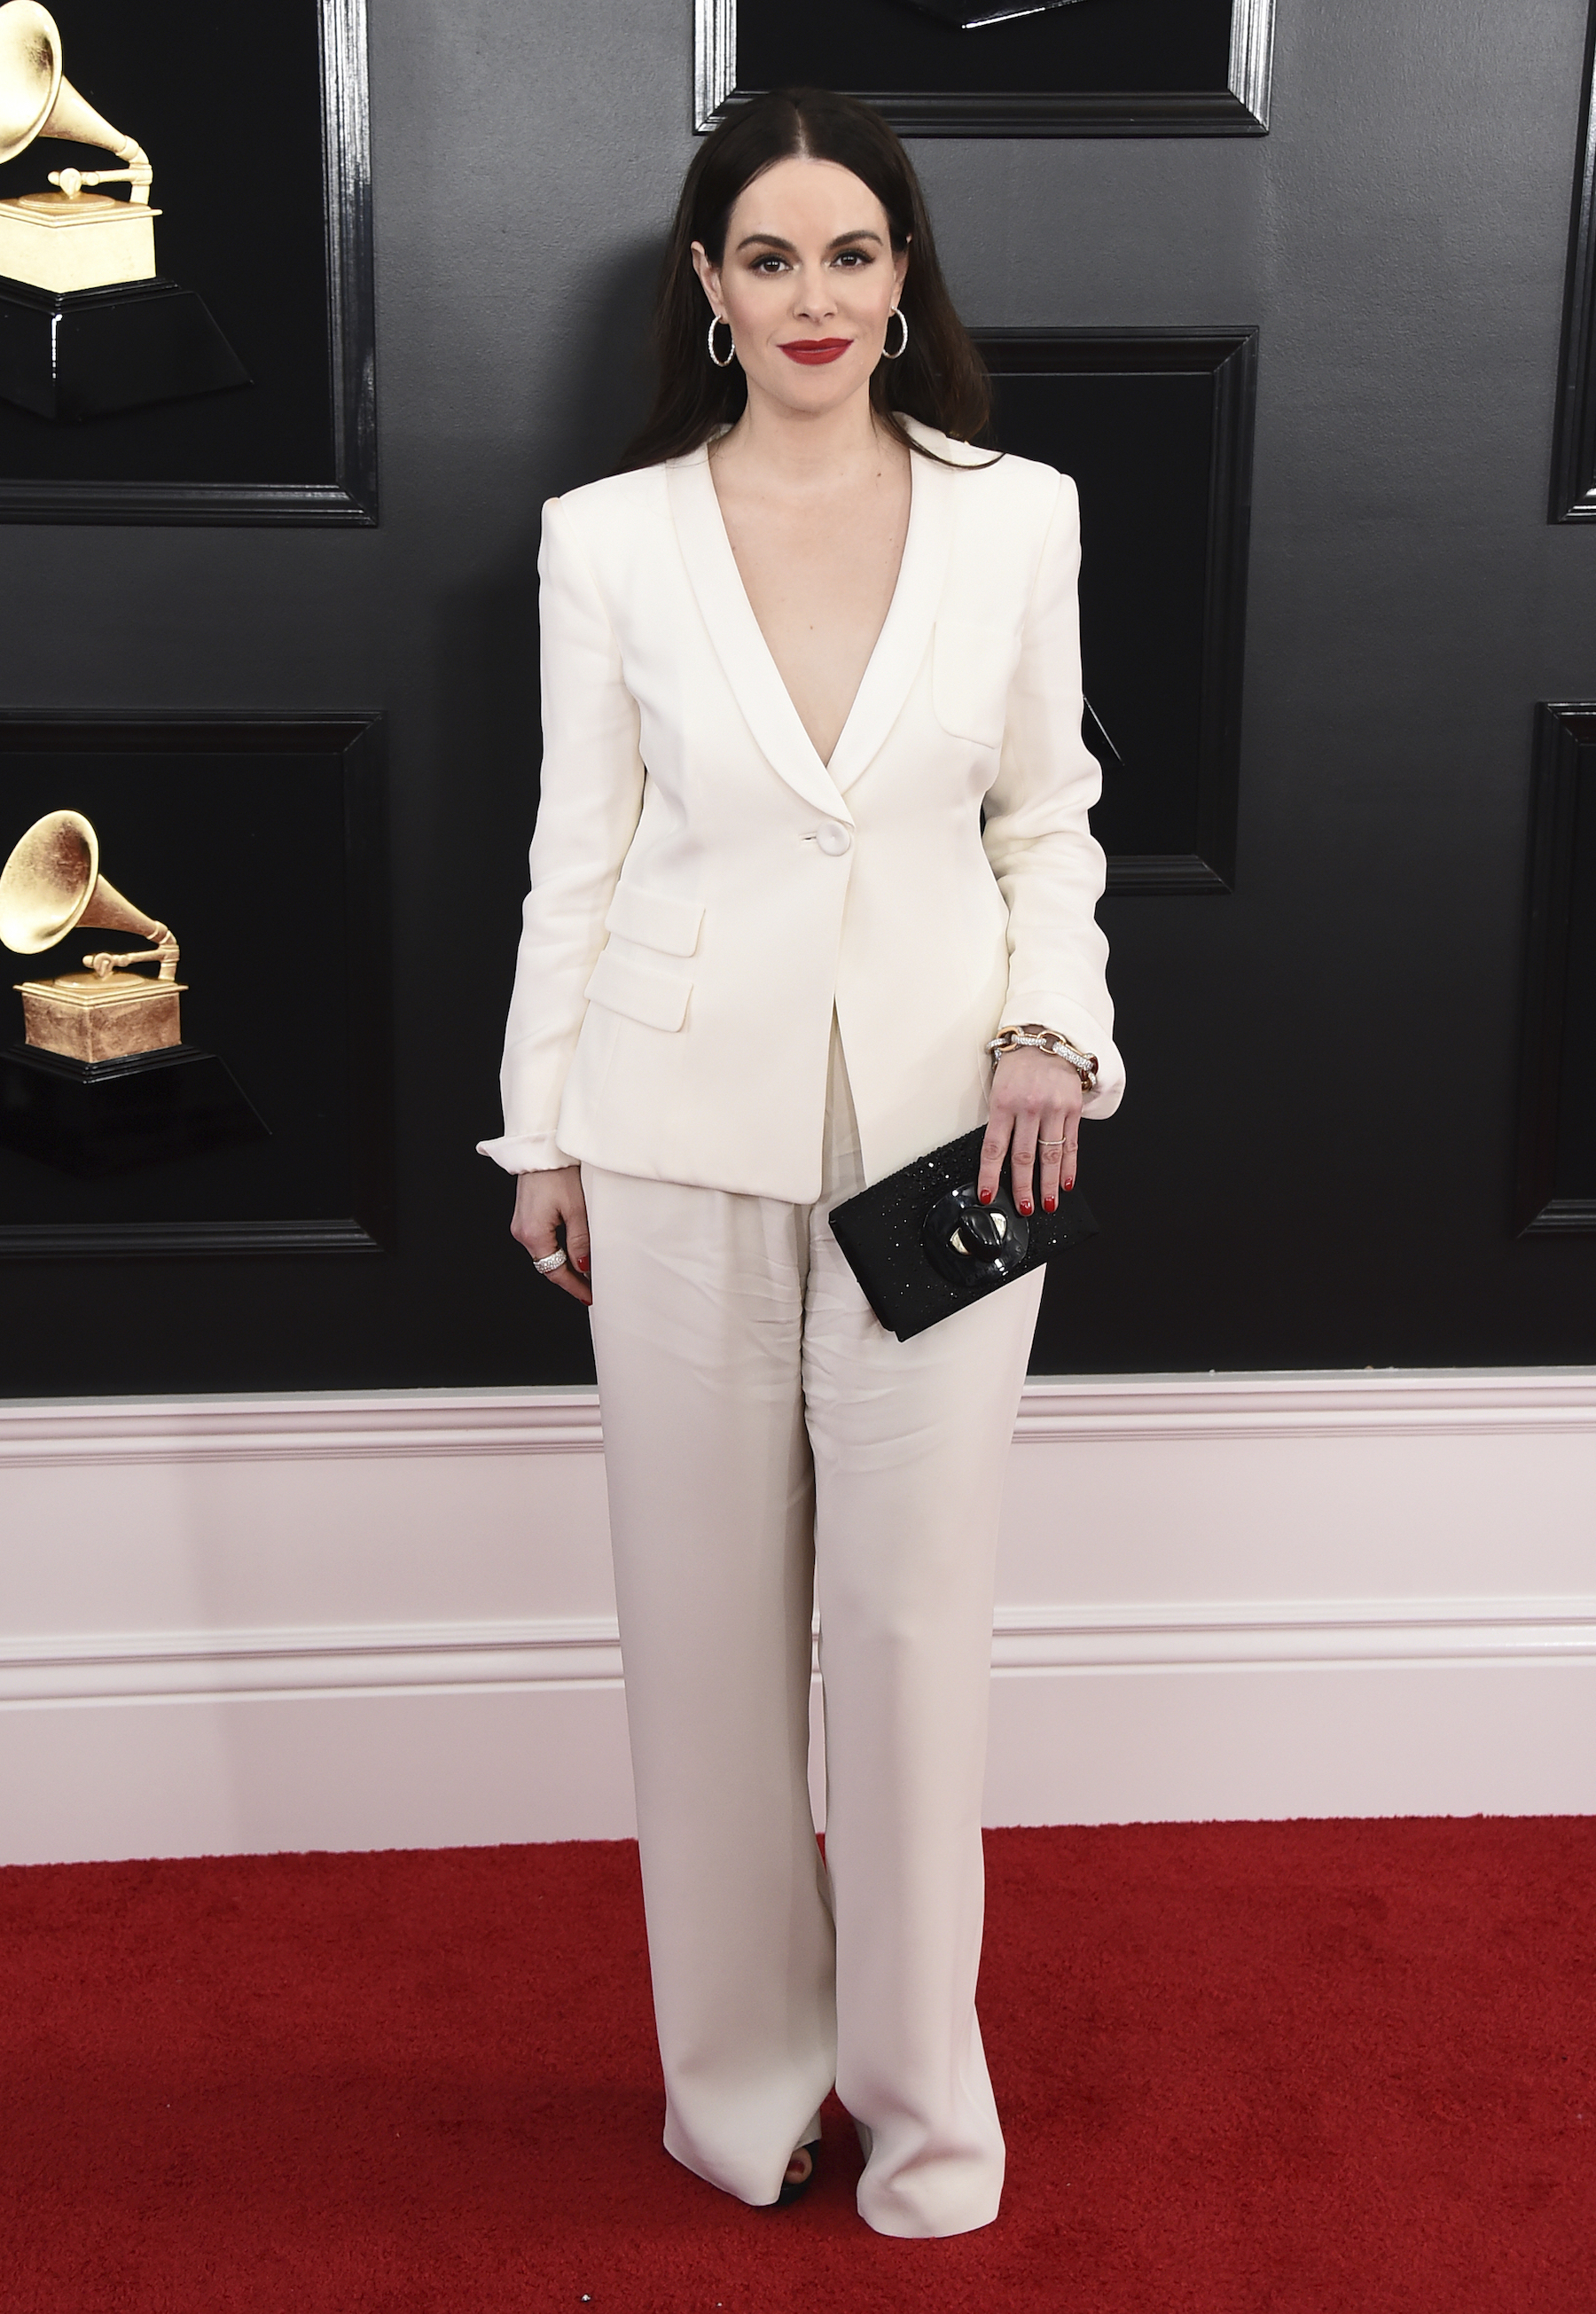 <div class='meta'><div class='origin-logo' data-origin='AP'></div><span class='caption-text' data-credit='Jordan Strauss/Invision/AP'>Emily Hampshire arrives at the 61st annual Grammy Awards at the Staples Center on Sunday, Feb. 10, 2019, in Los Angeles.</span></div>